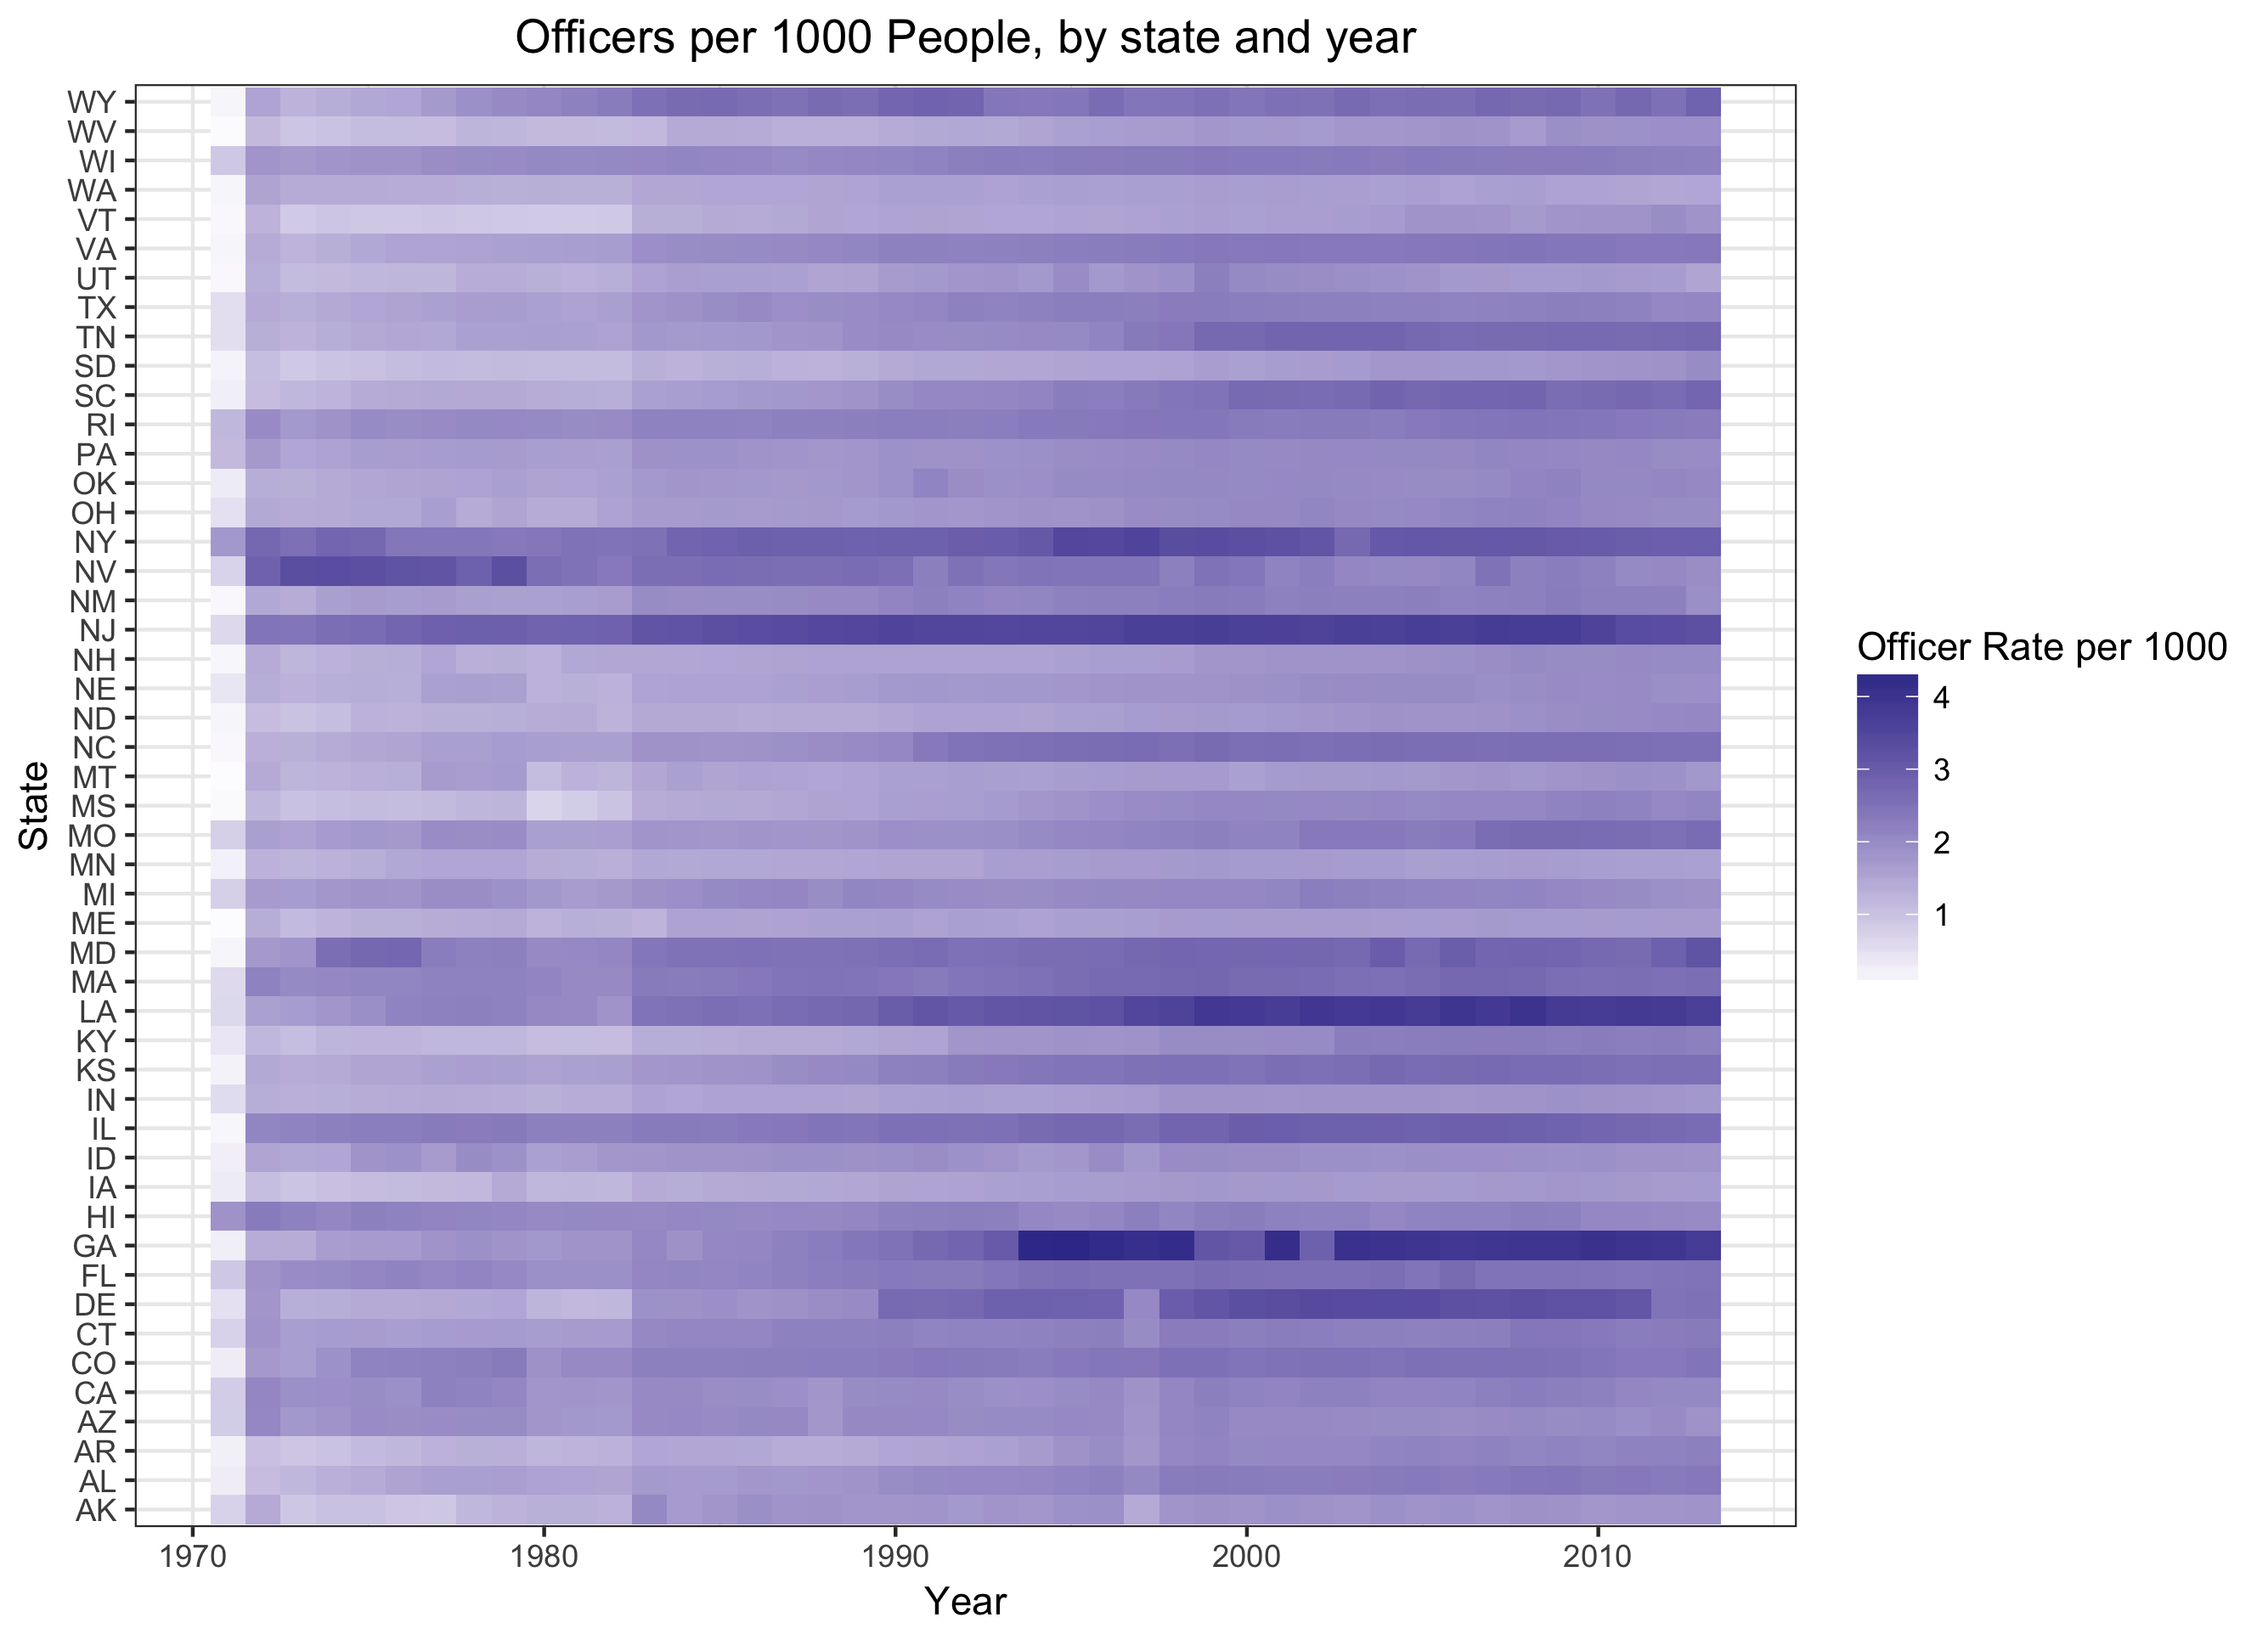 Officers per 1000